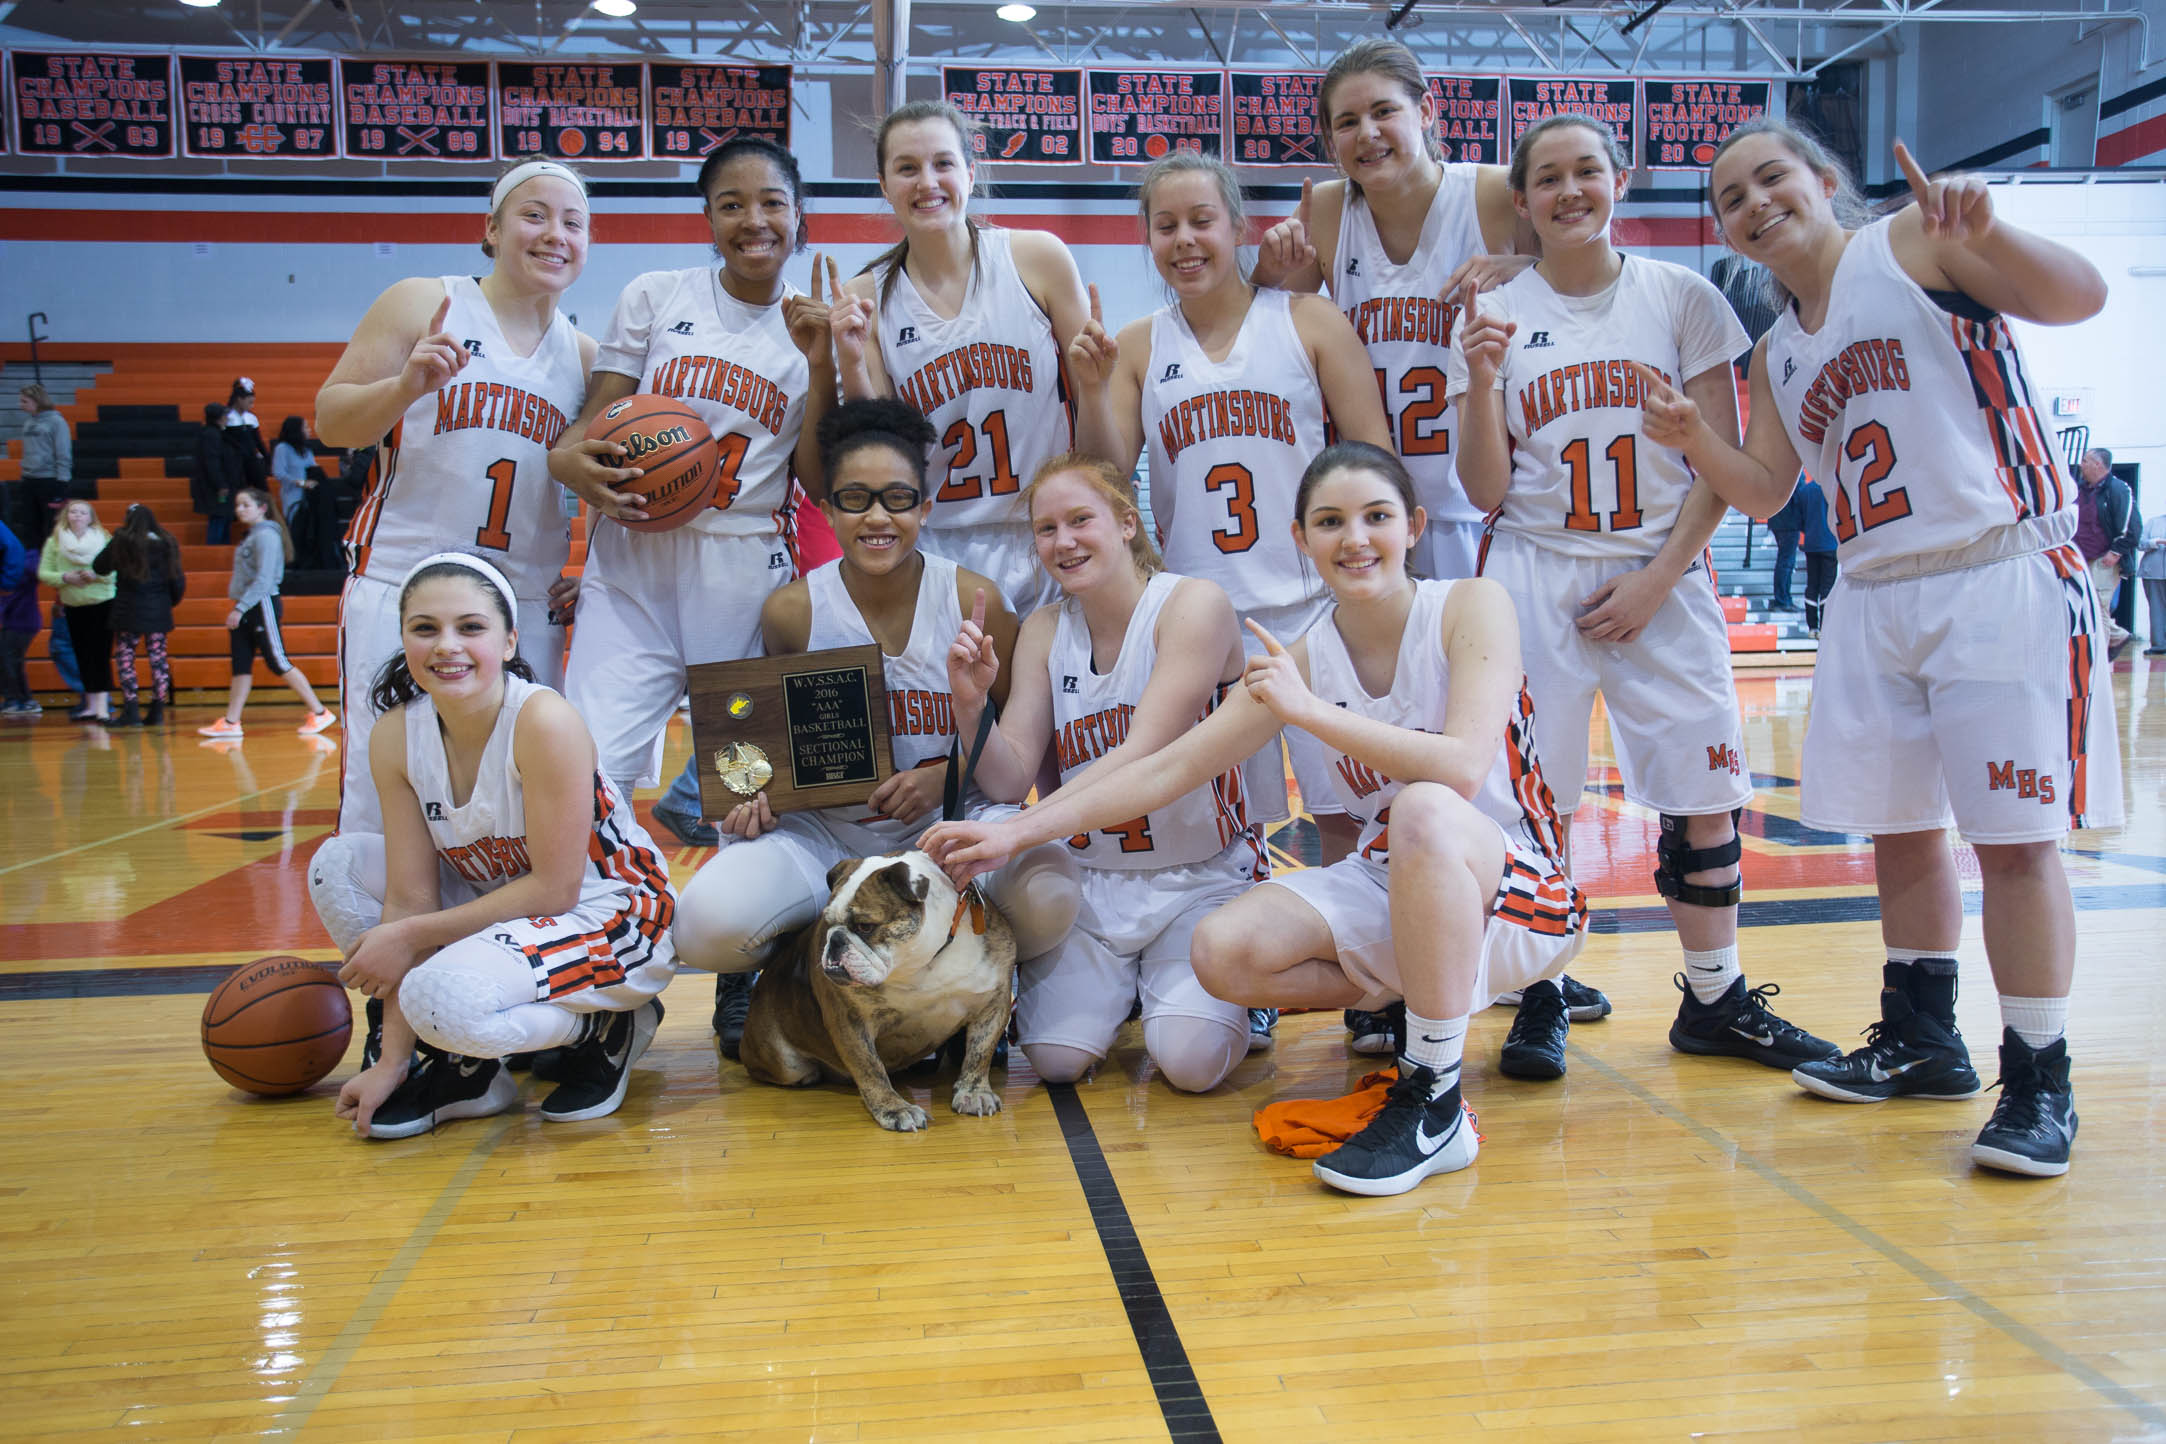 martinsburg girls View the schedule, scores, league standings, rankings, roster and articles for the martinsburg bulldogs girls soccer team on maxpreps.